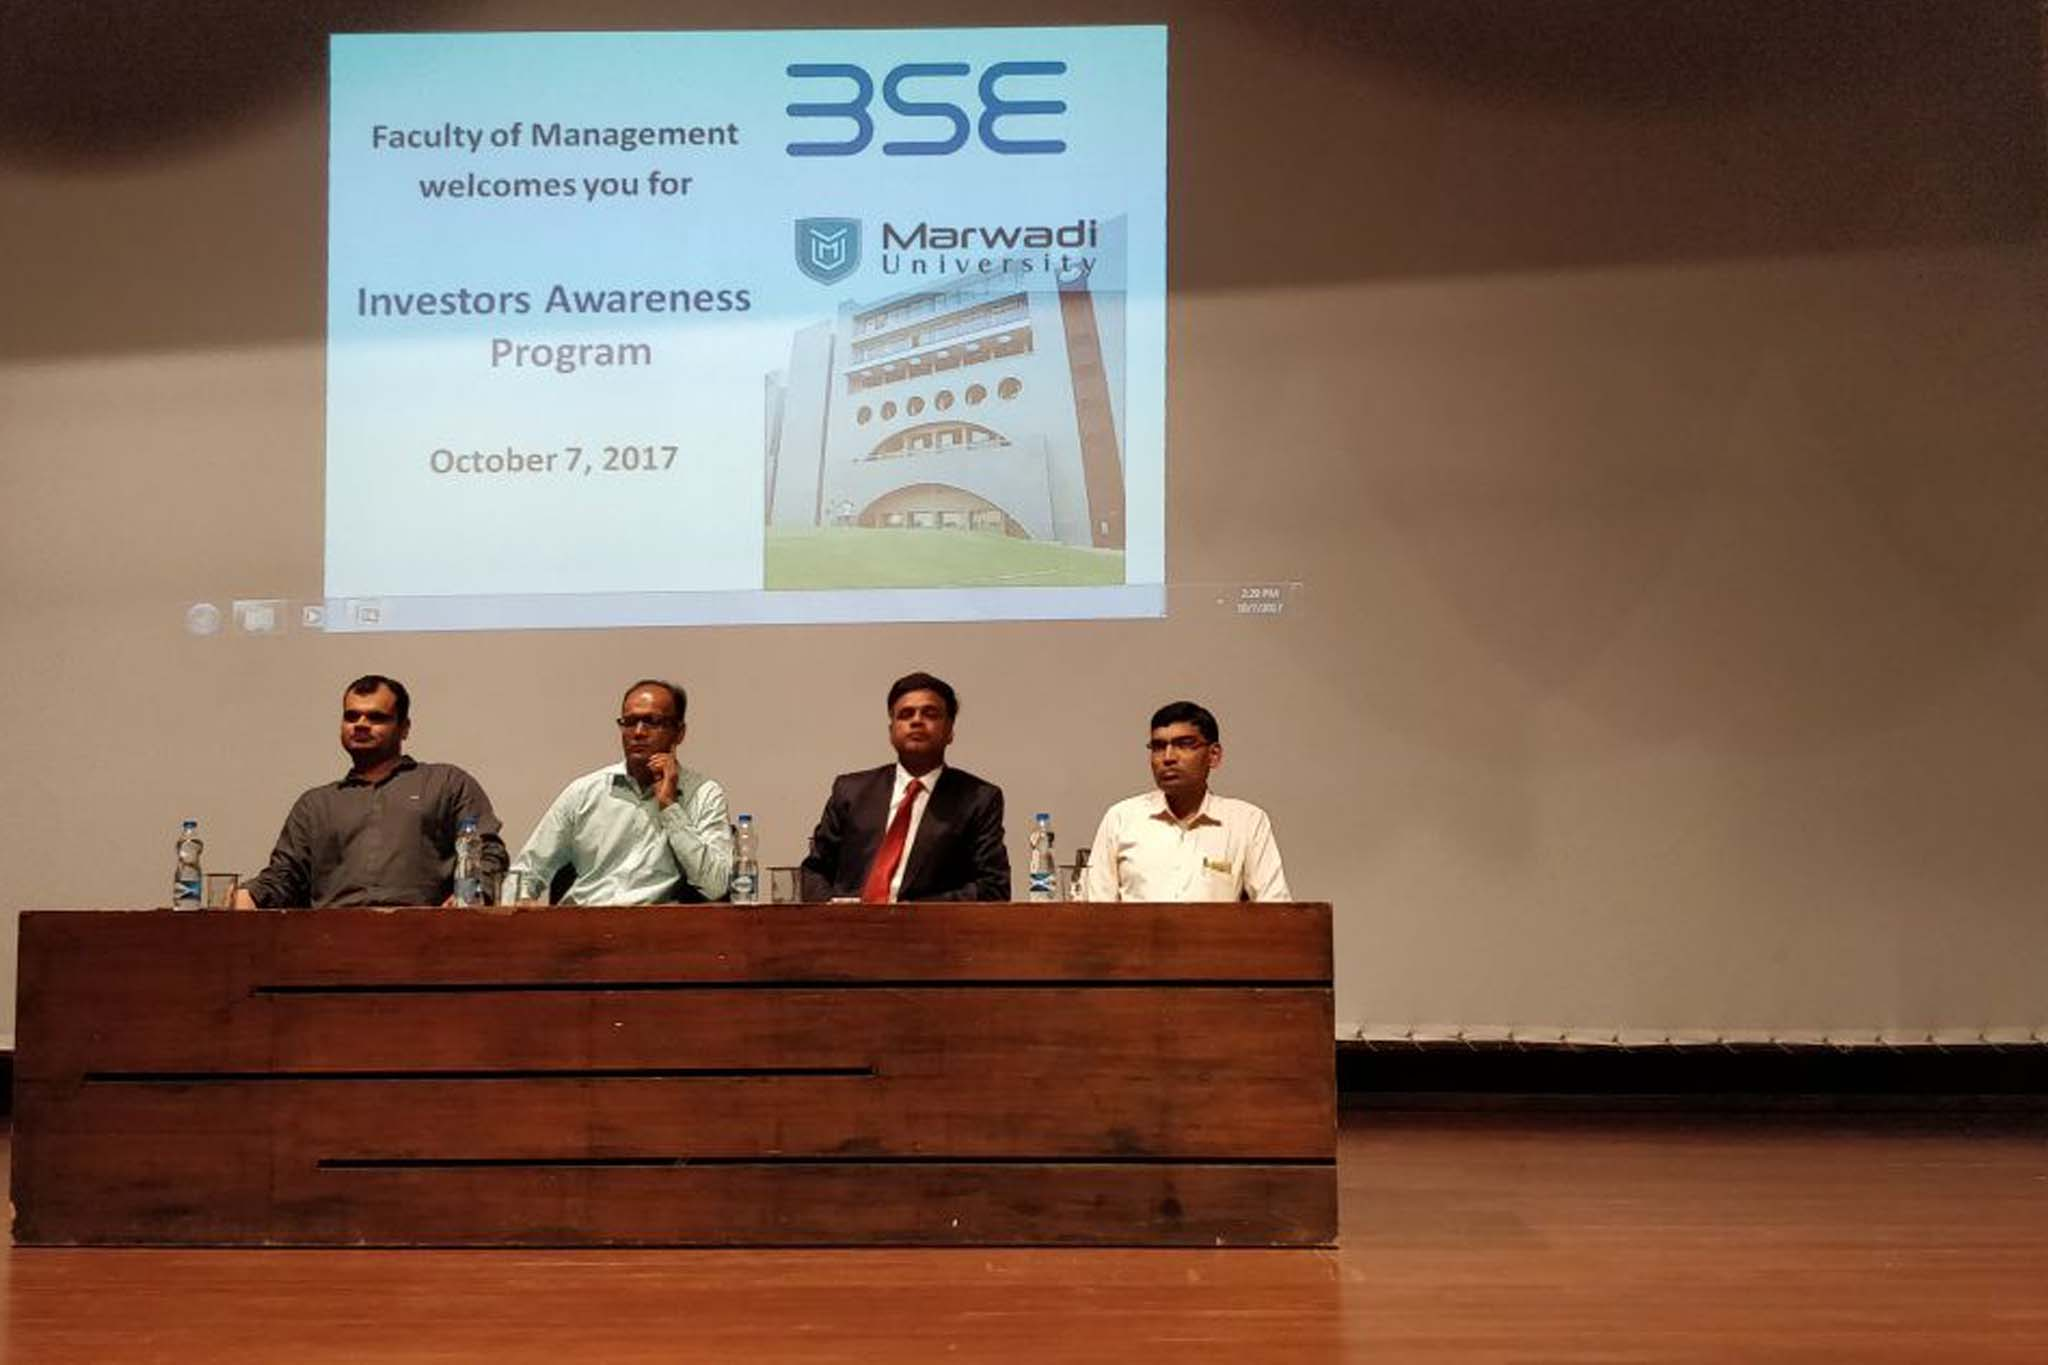 Investors Awareness Program